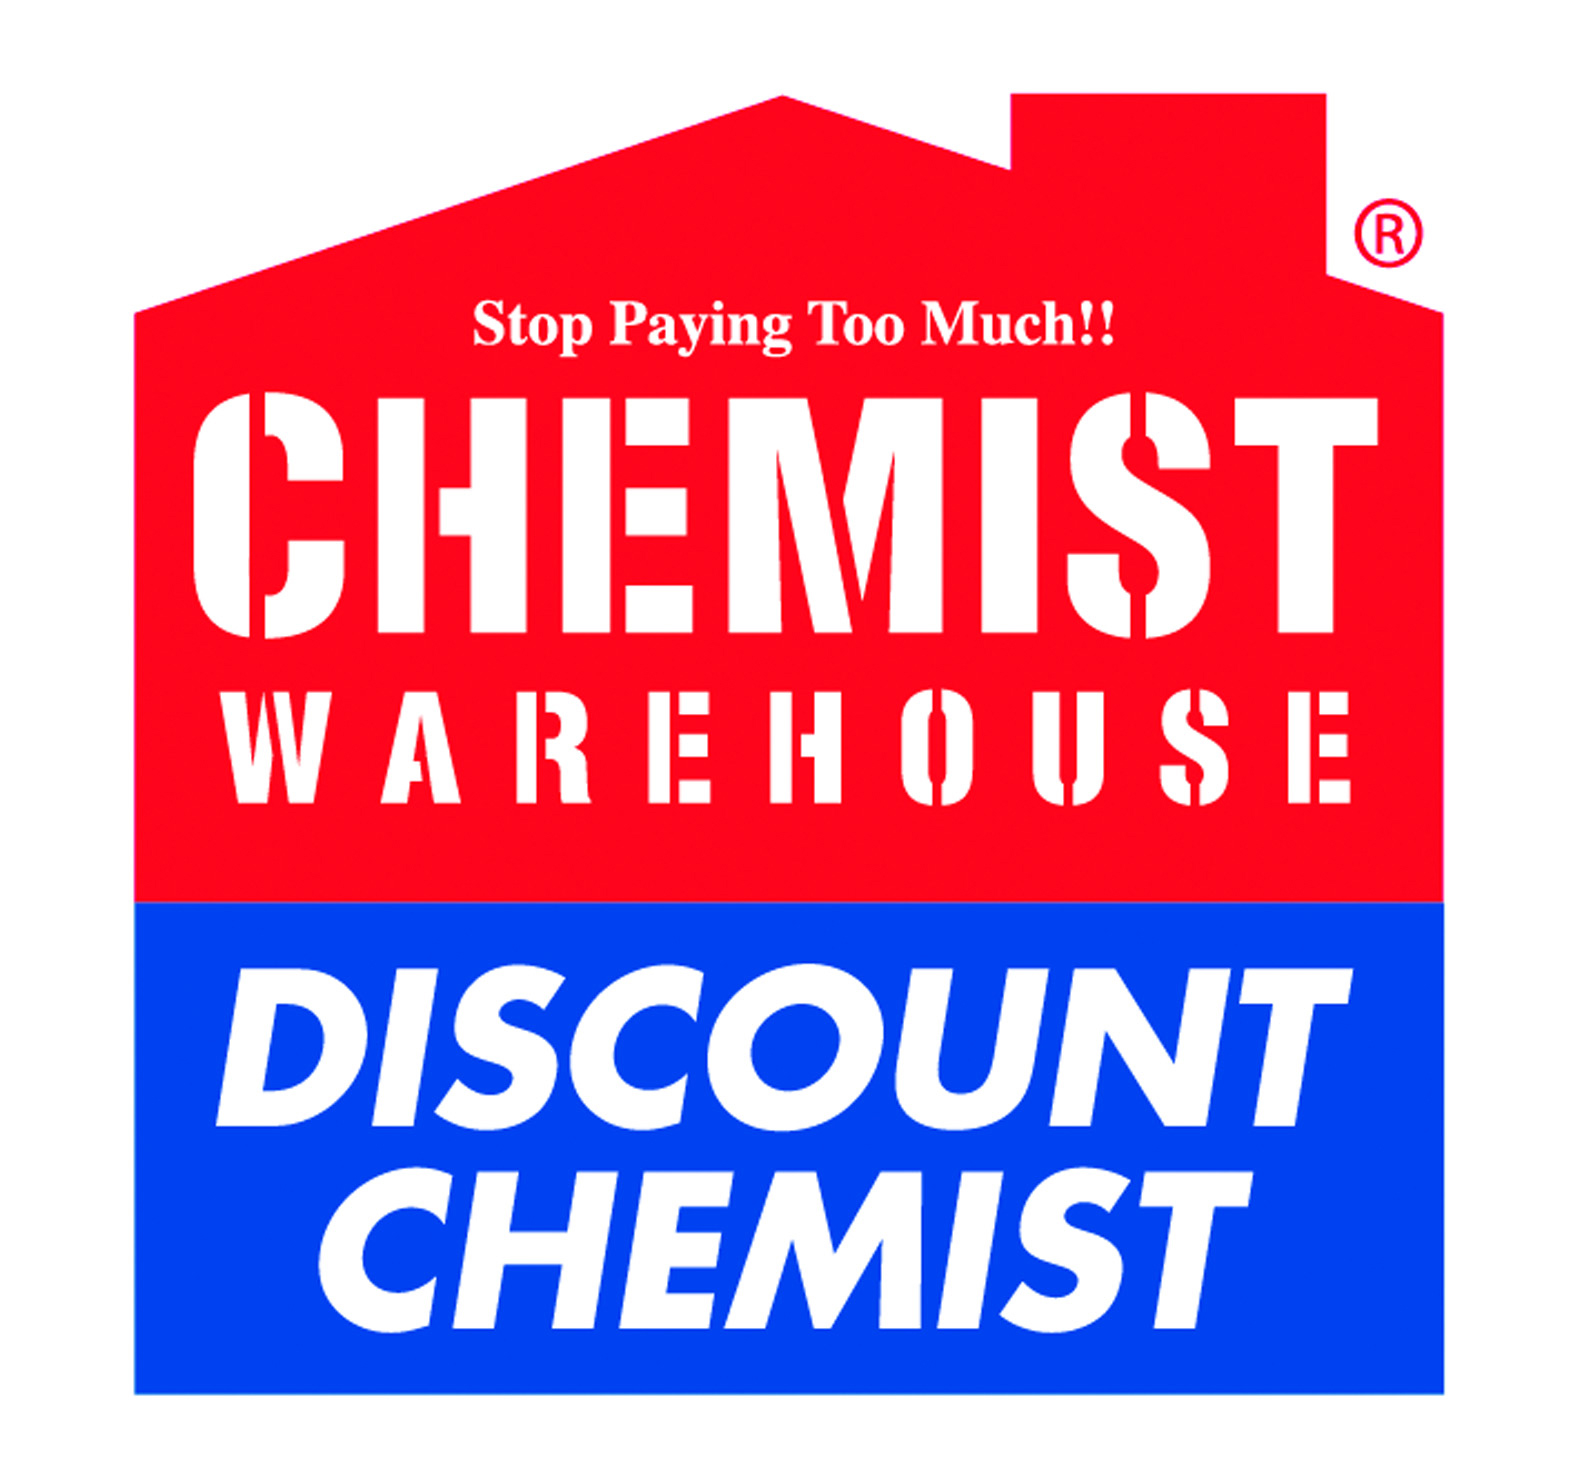 Chemist Warehouse selects Kofax TotalAgility platform to streamline Accounts Payable processes